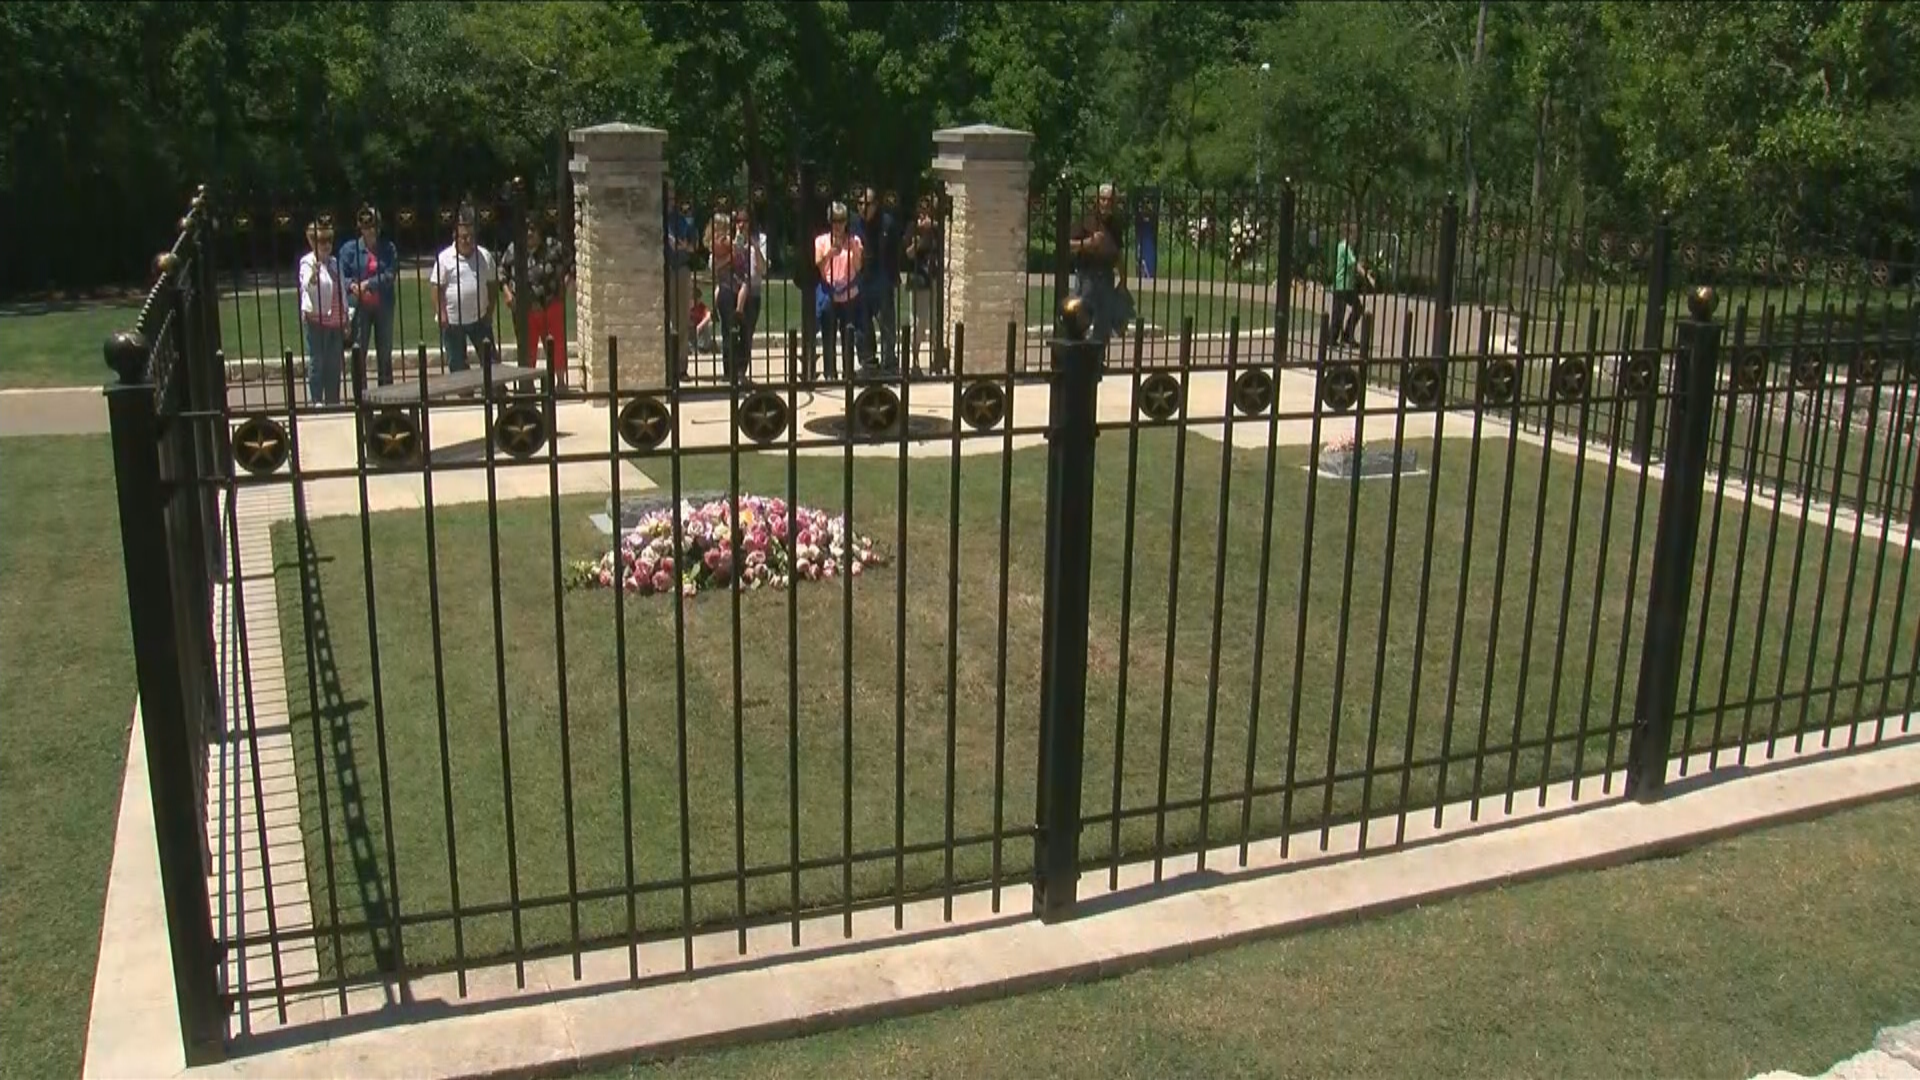 The gravesite of former First Lady Barbara Bush opened to the public for the first time on Monday. Mrs. Bush is buried on the grounds of the George H. W. Bush Presidential Library and Museum in College Station. It's a chance for those who admired the First Lady to say thank you and goodbye. (CBS Austin)